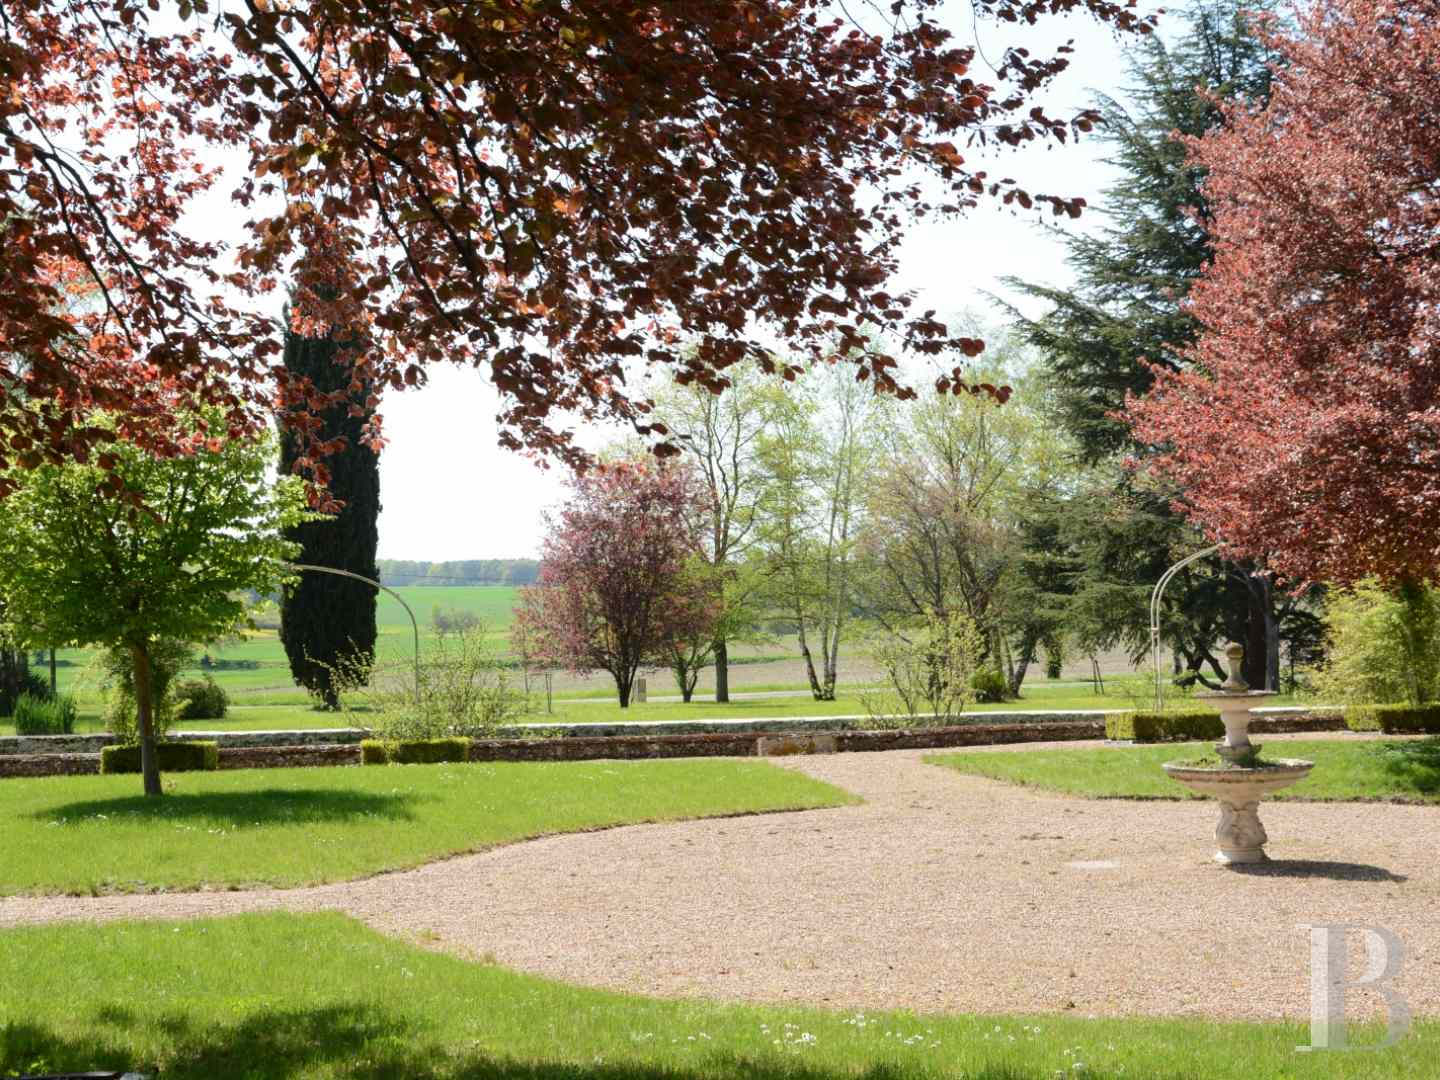 property for sale France center val de loire hunting grounds - 18 zoom